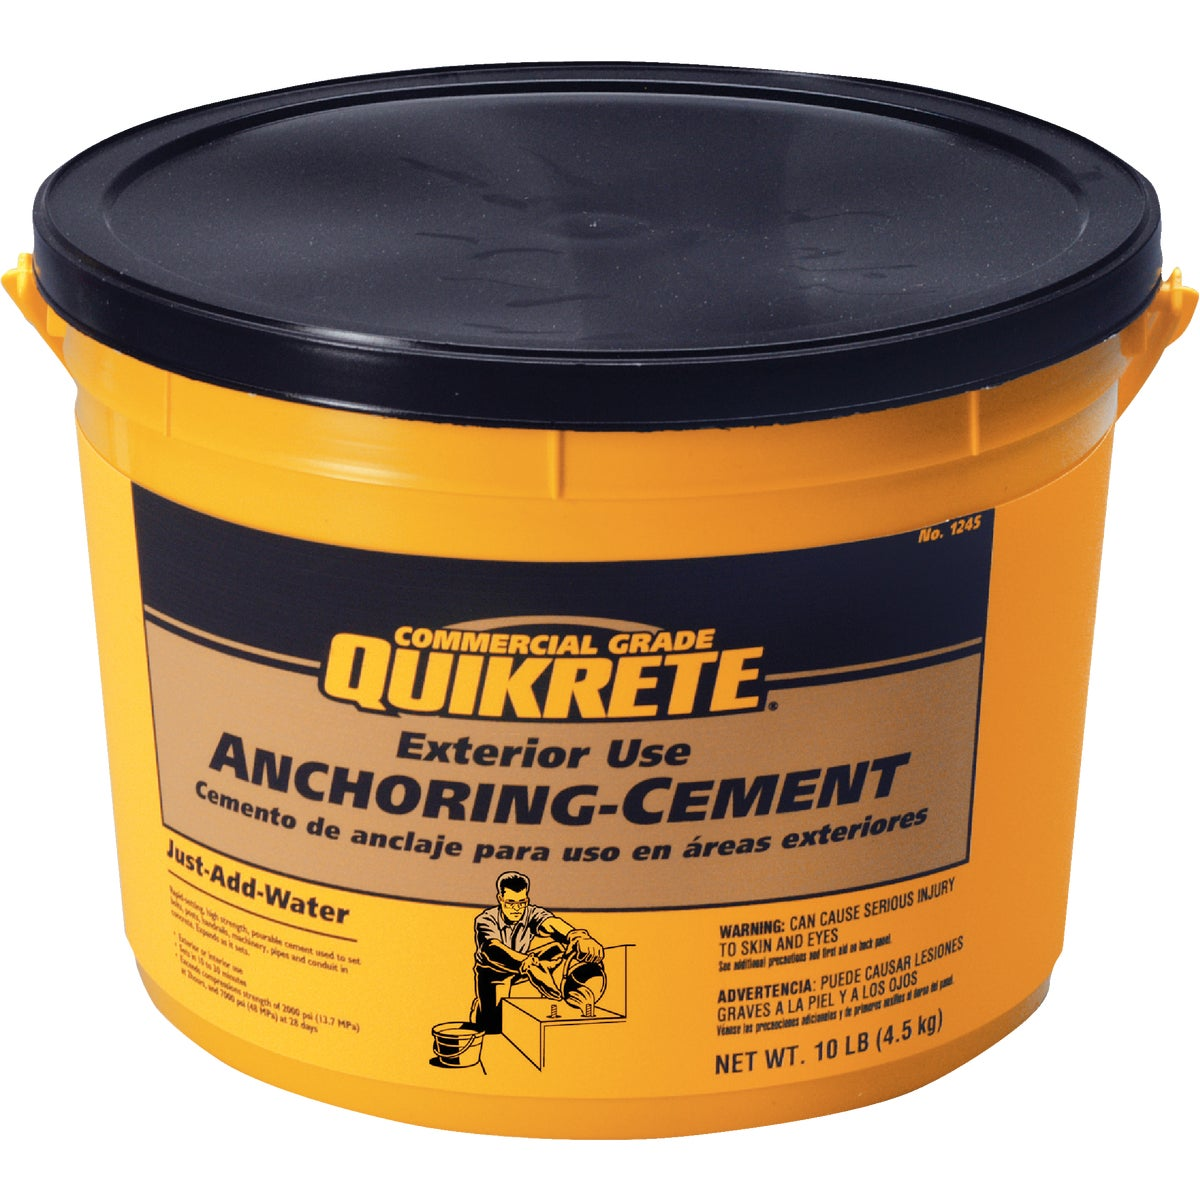 10LB ANCHORING CEMENT - 1245-11 by Quikrete Co